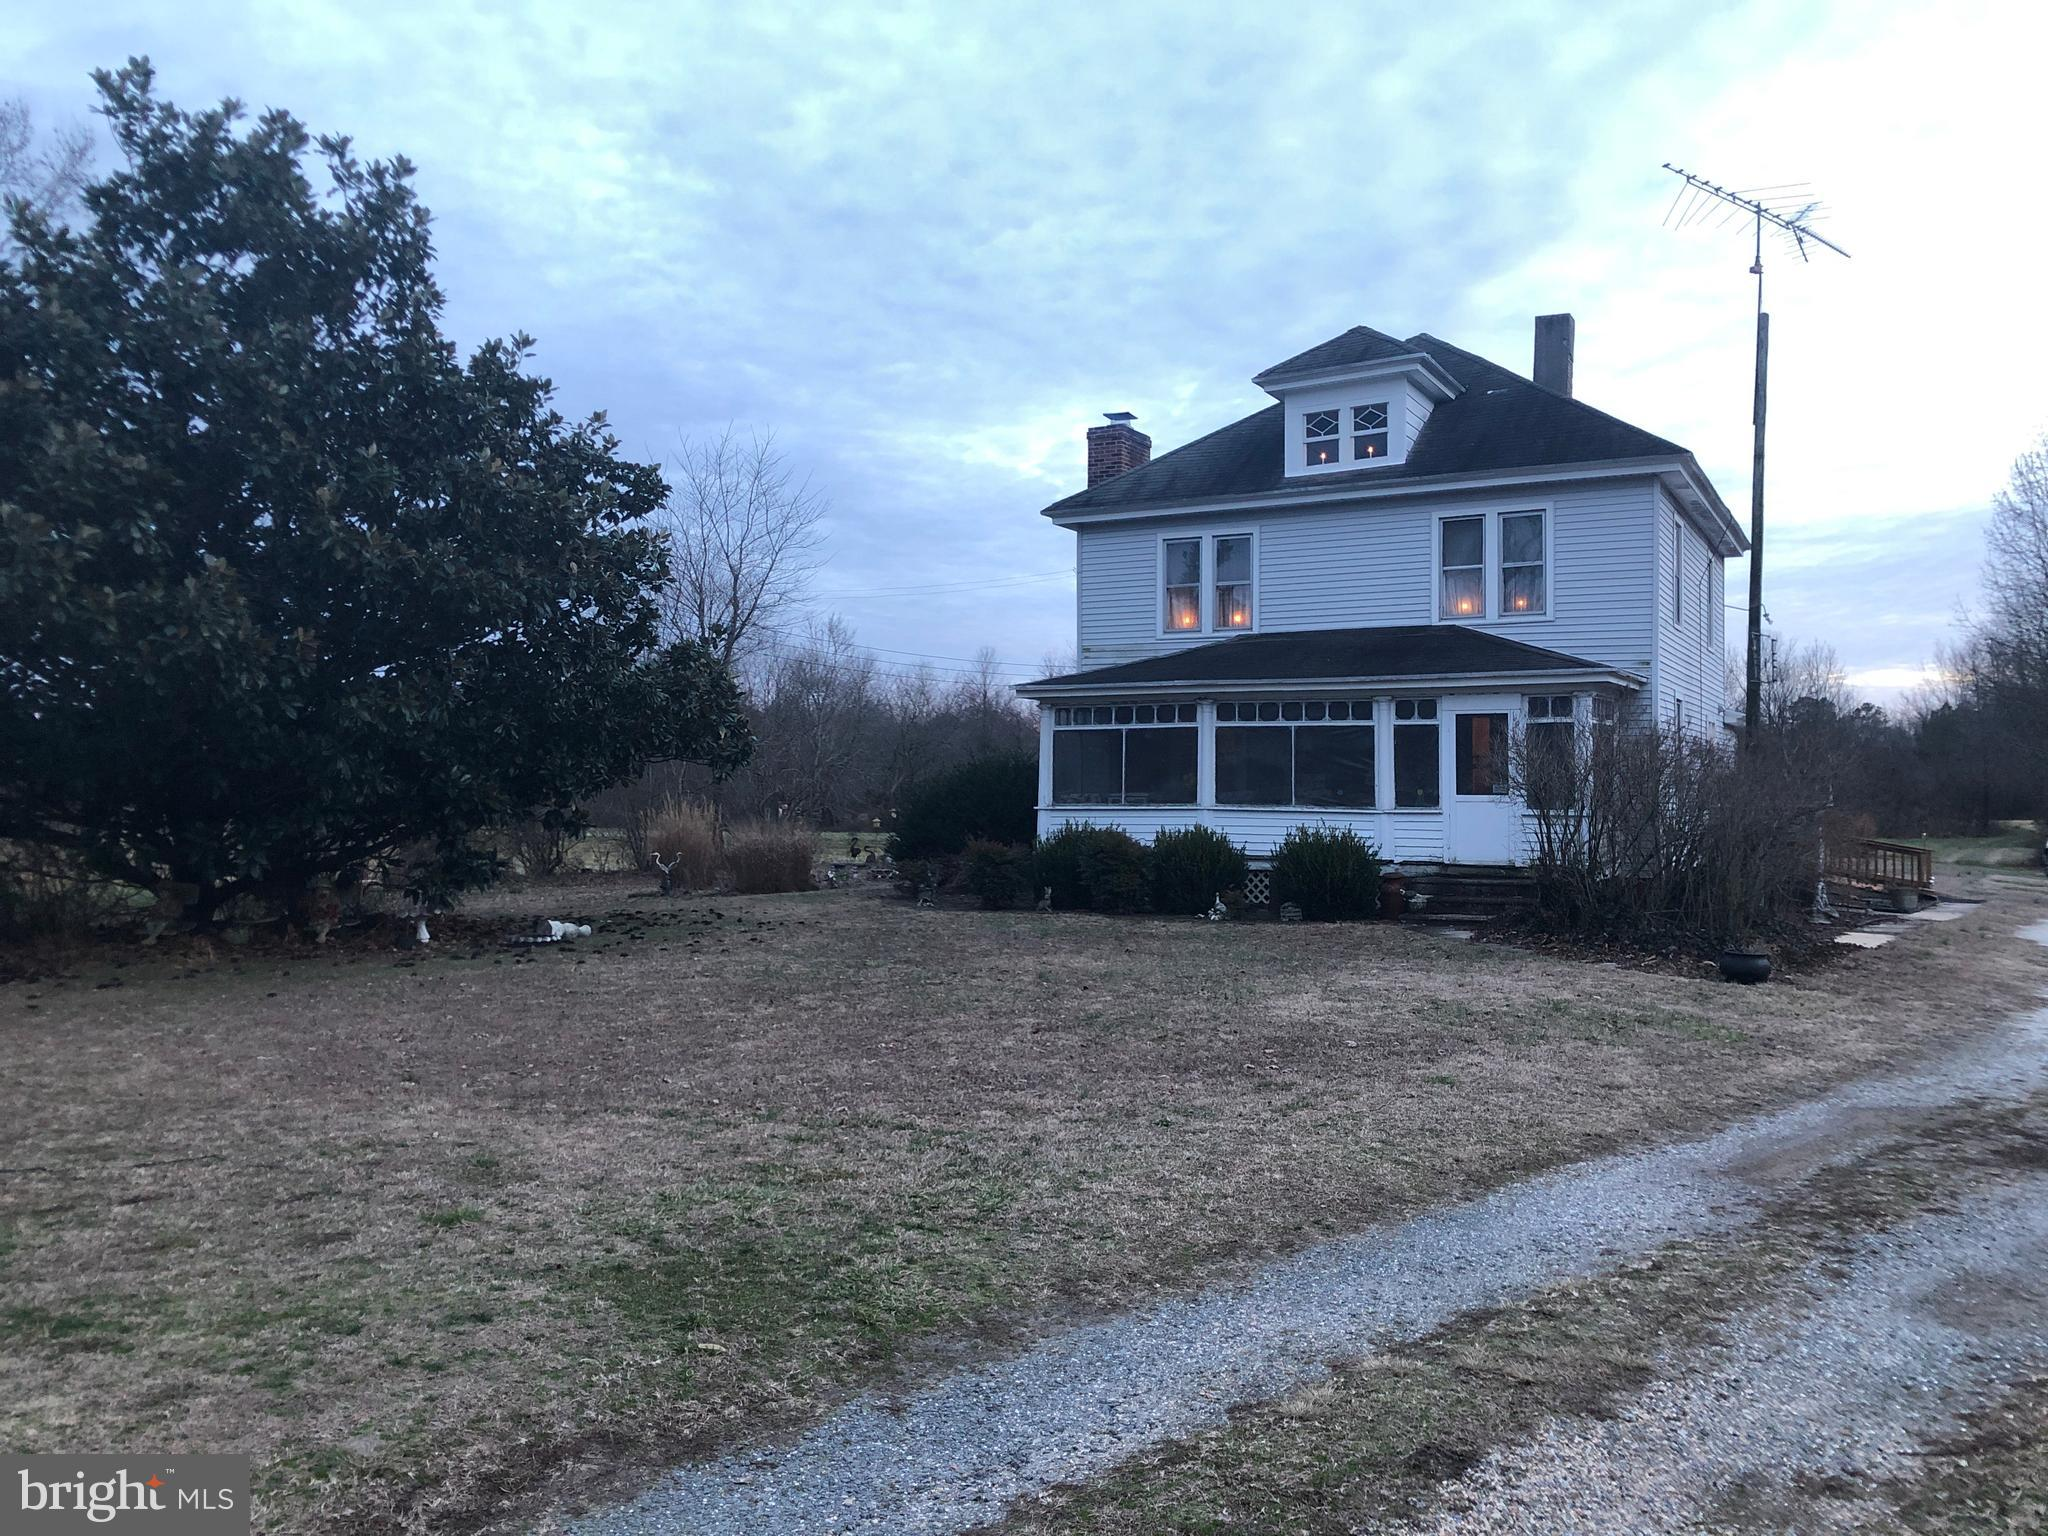 33793 E LINE ROAD, DELMAR, MD 21875